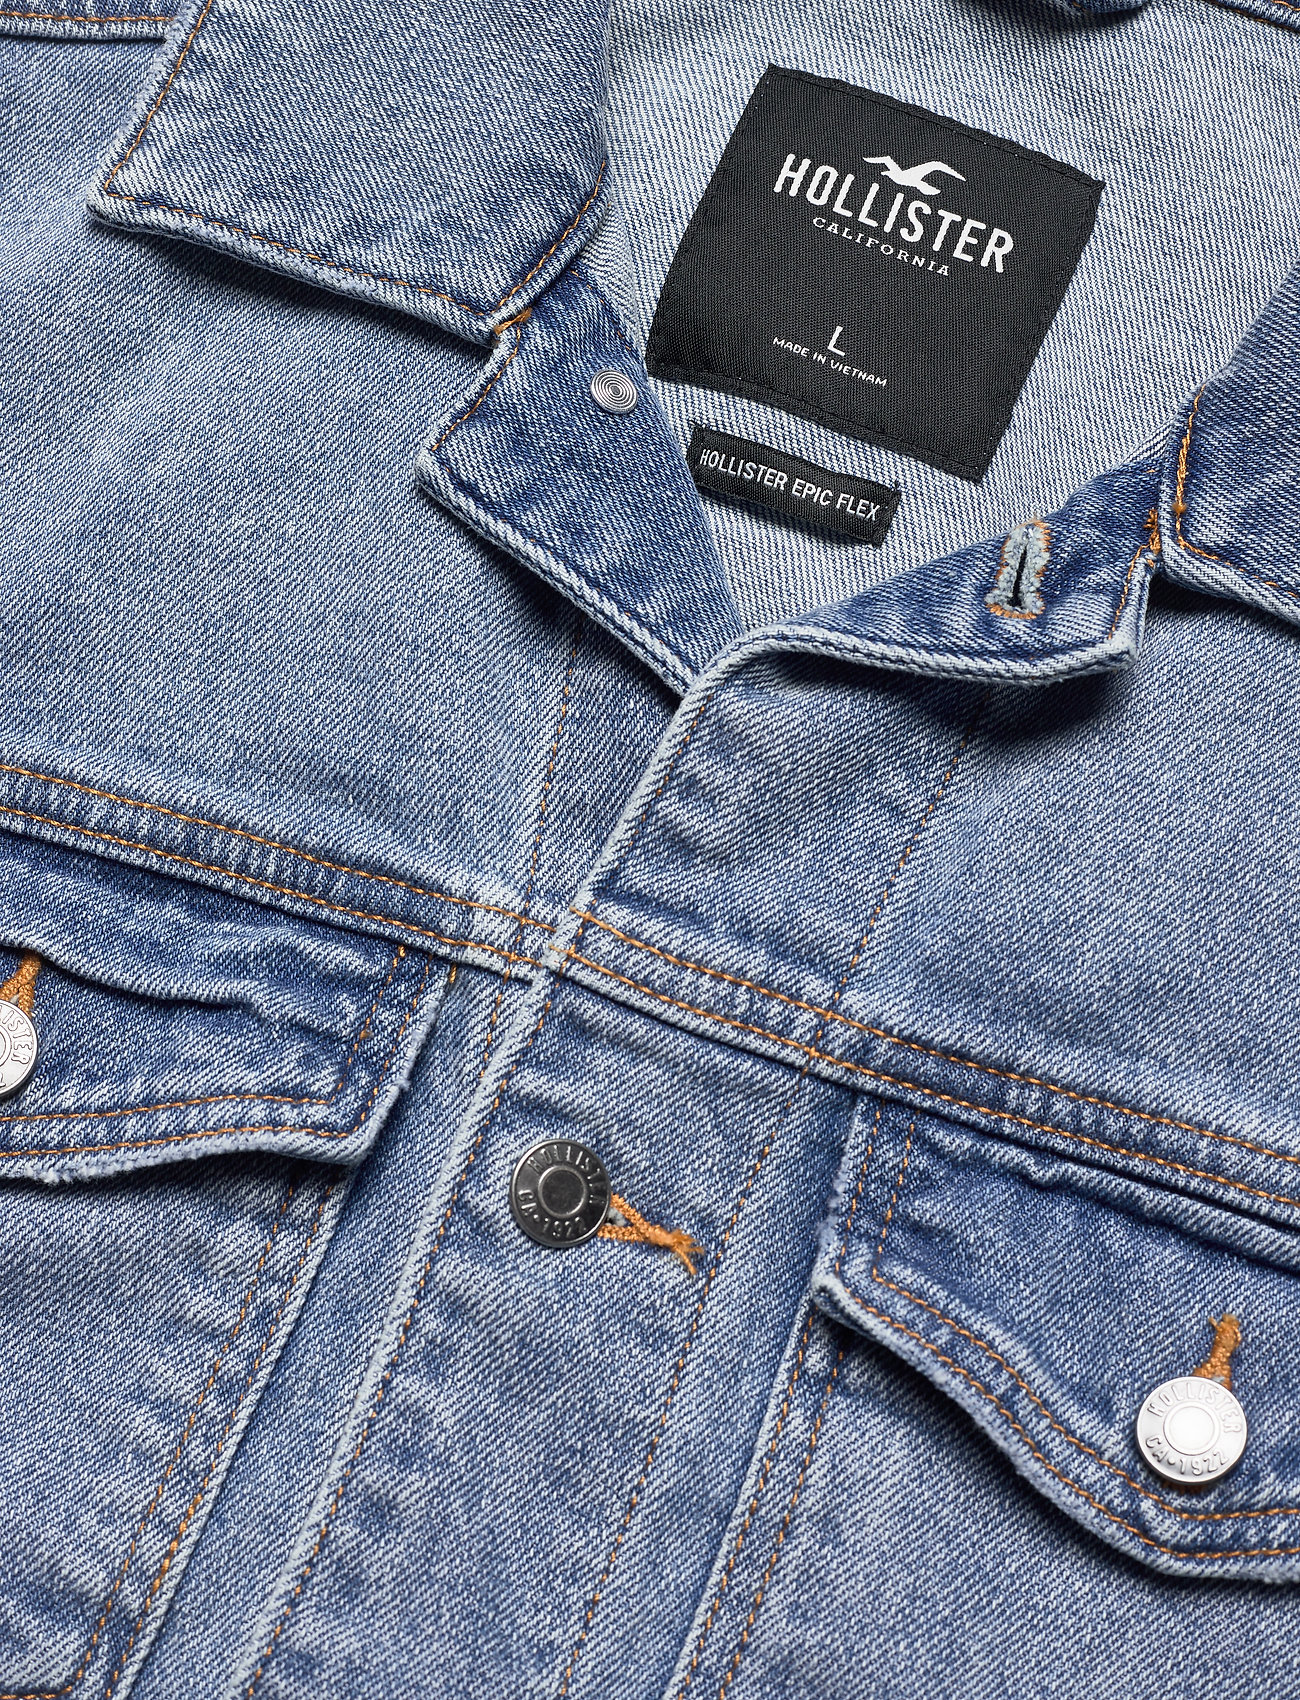 Wash Denim Trucker (Light) (51.35 €) - Hollister eVmZa